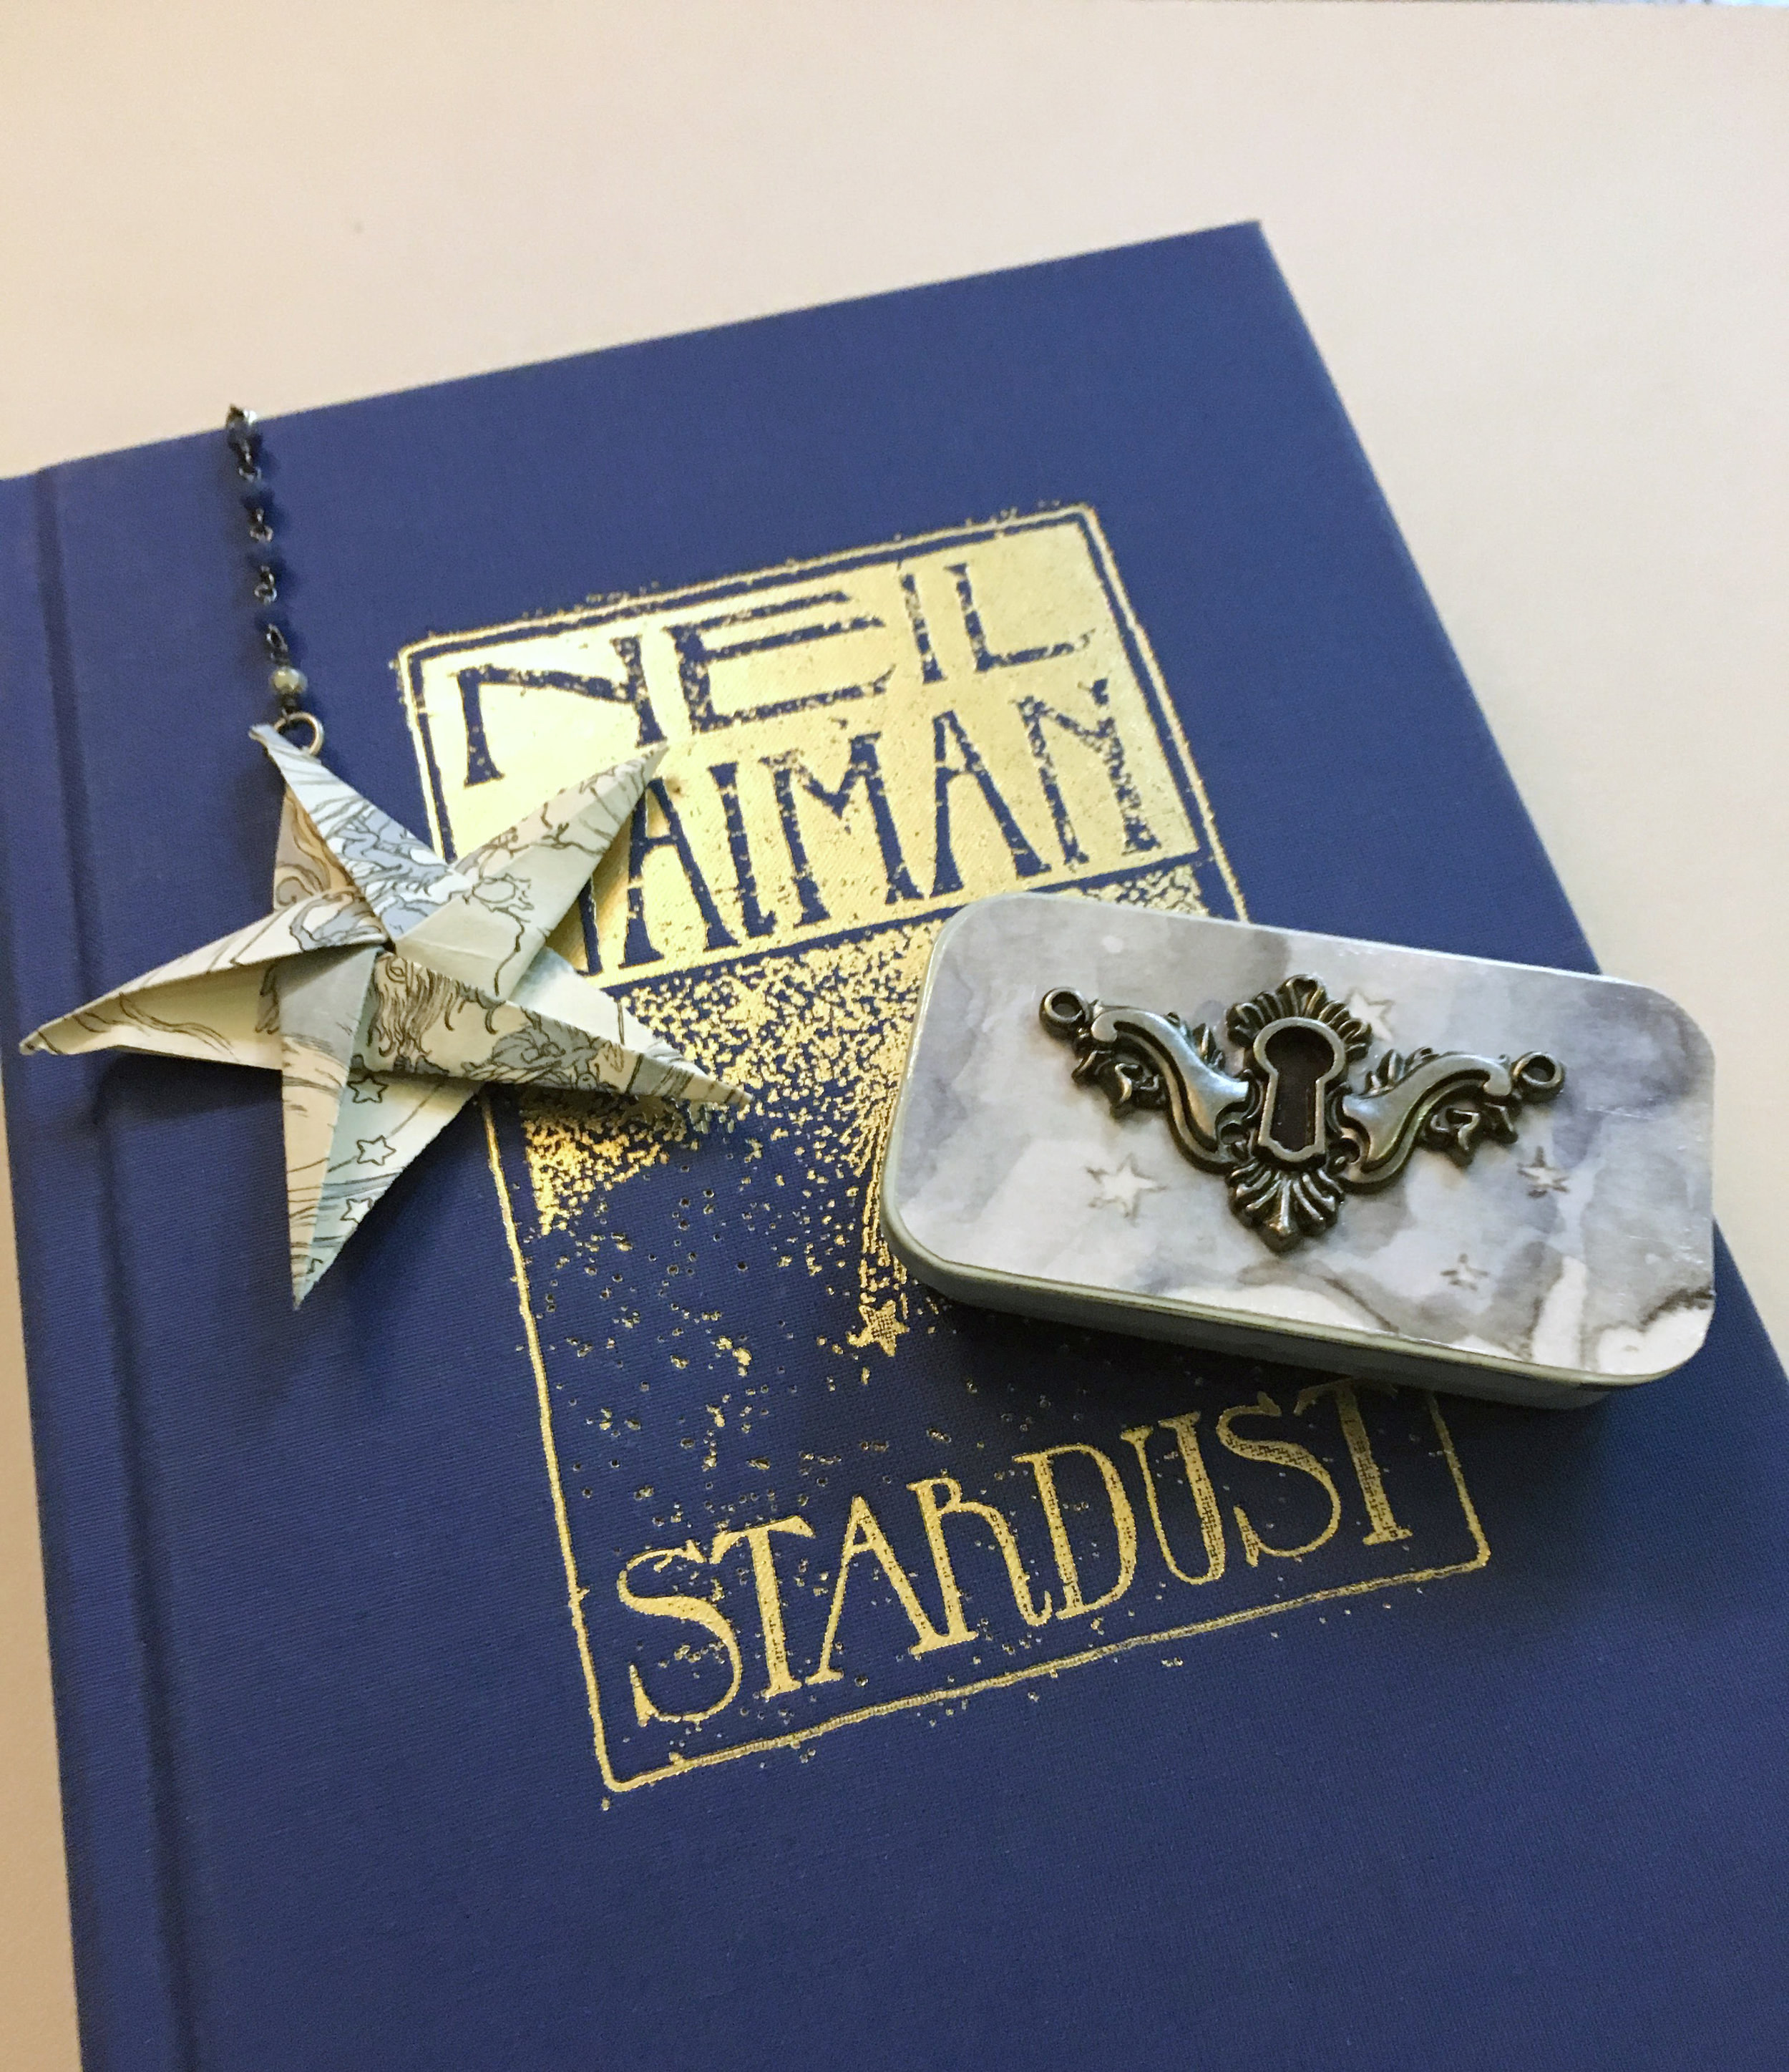 altered book2 - cover with tin.jpg